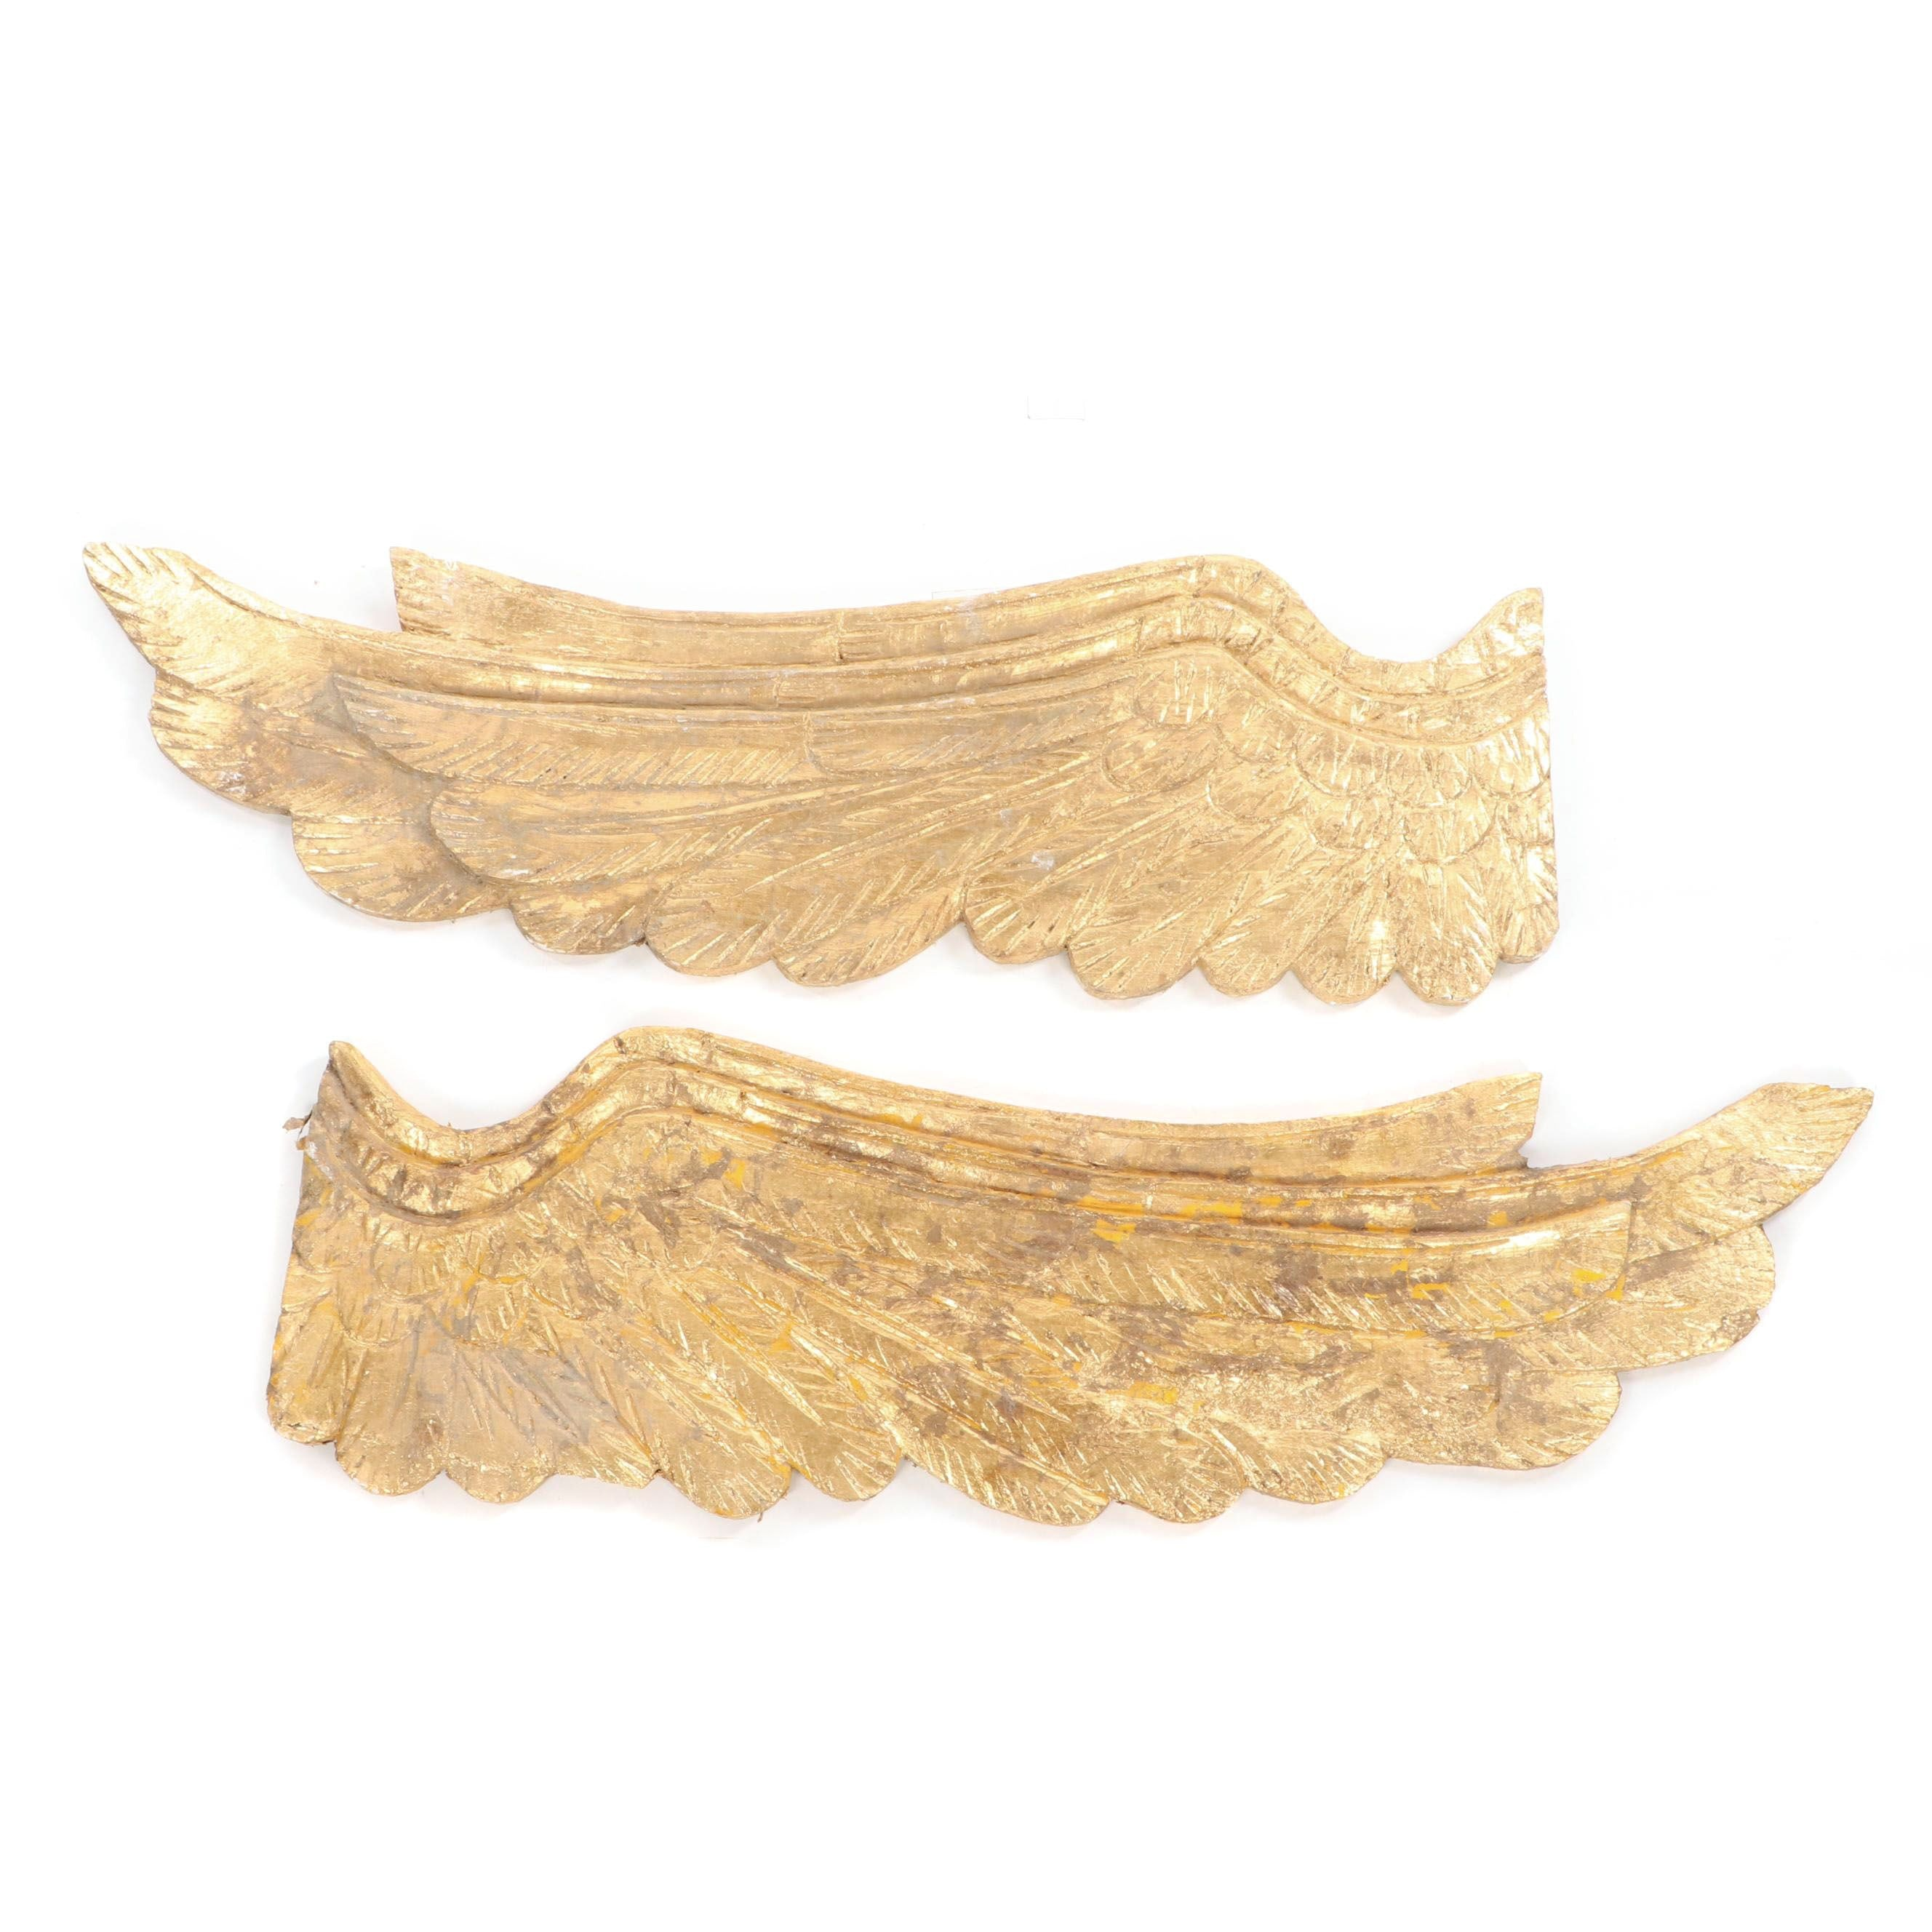 Gold Painted Carved Wood Wings